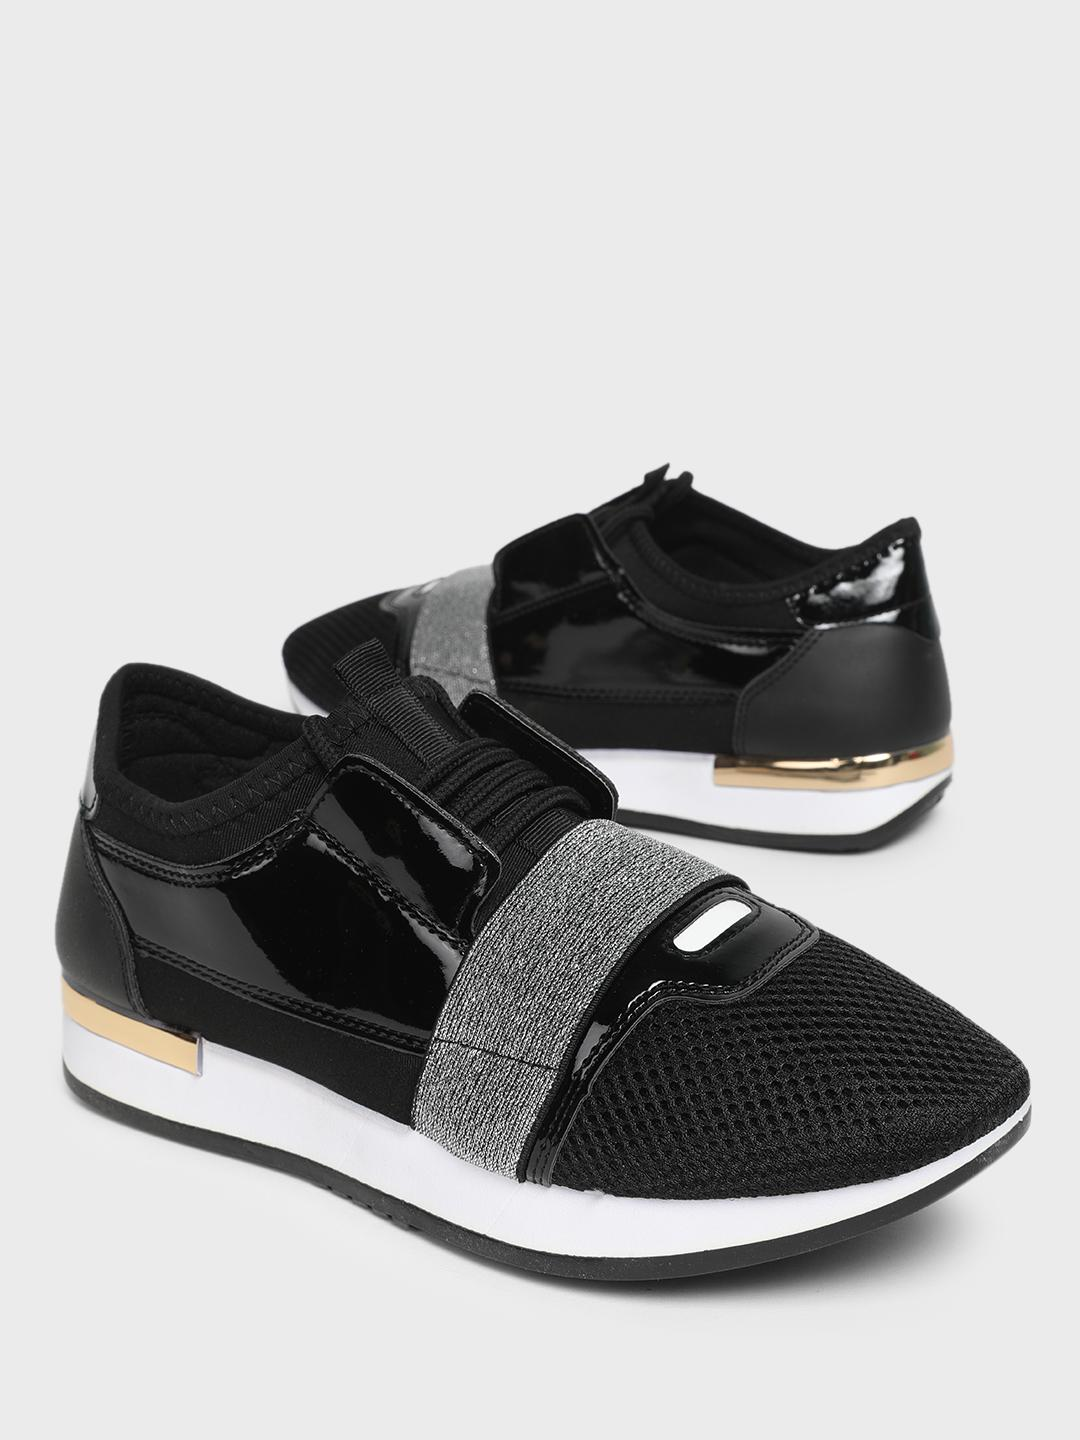 KOOVS Black Lace-Up Metal Detail Patent Sneakers 1